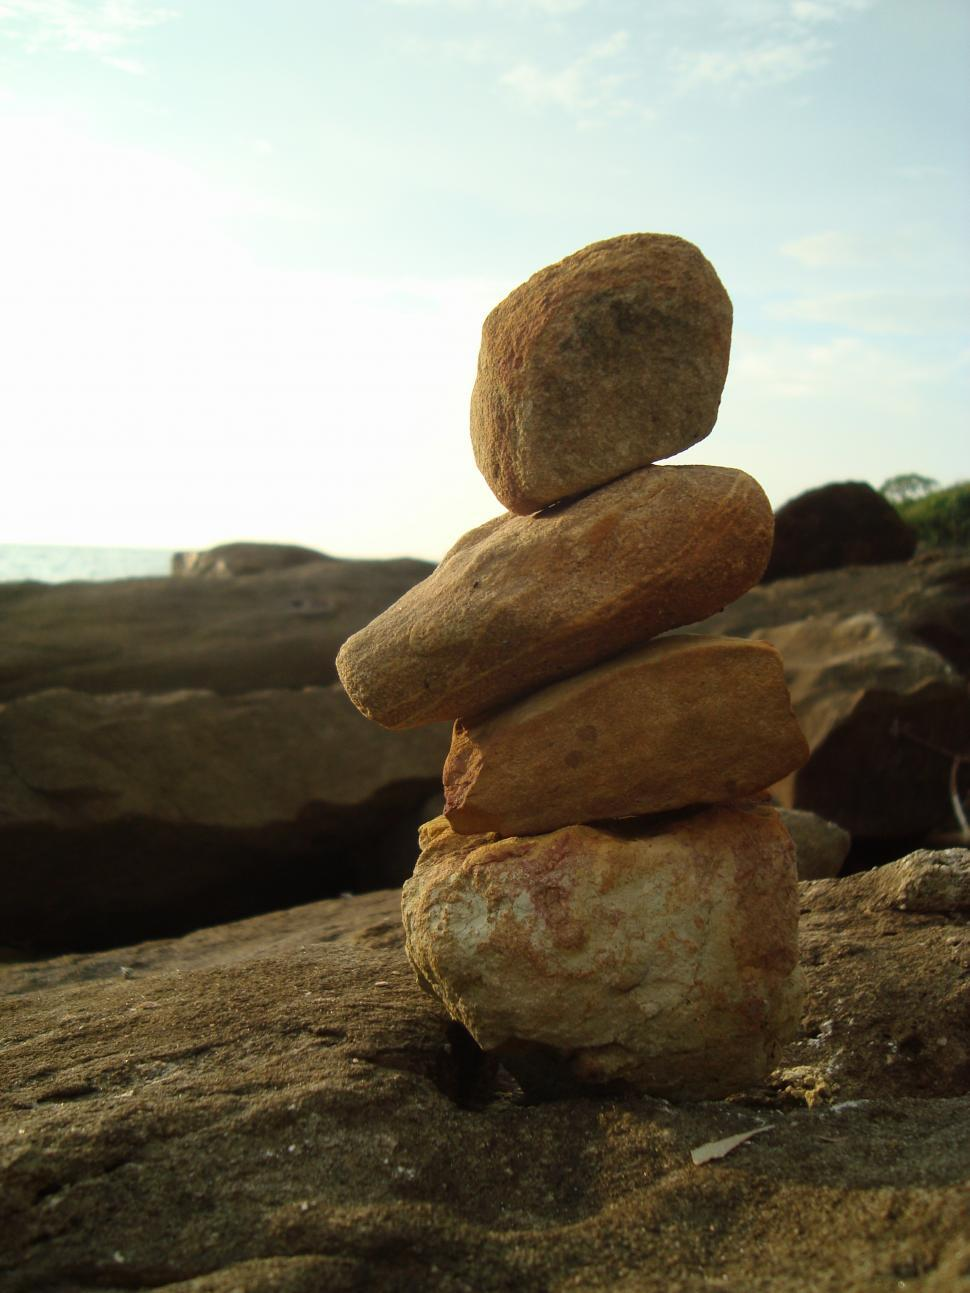 Download Free Stock HD Photo of Pebble Balance by the Sea Online